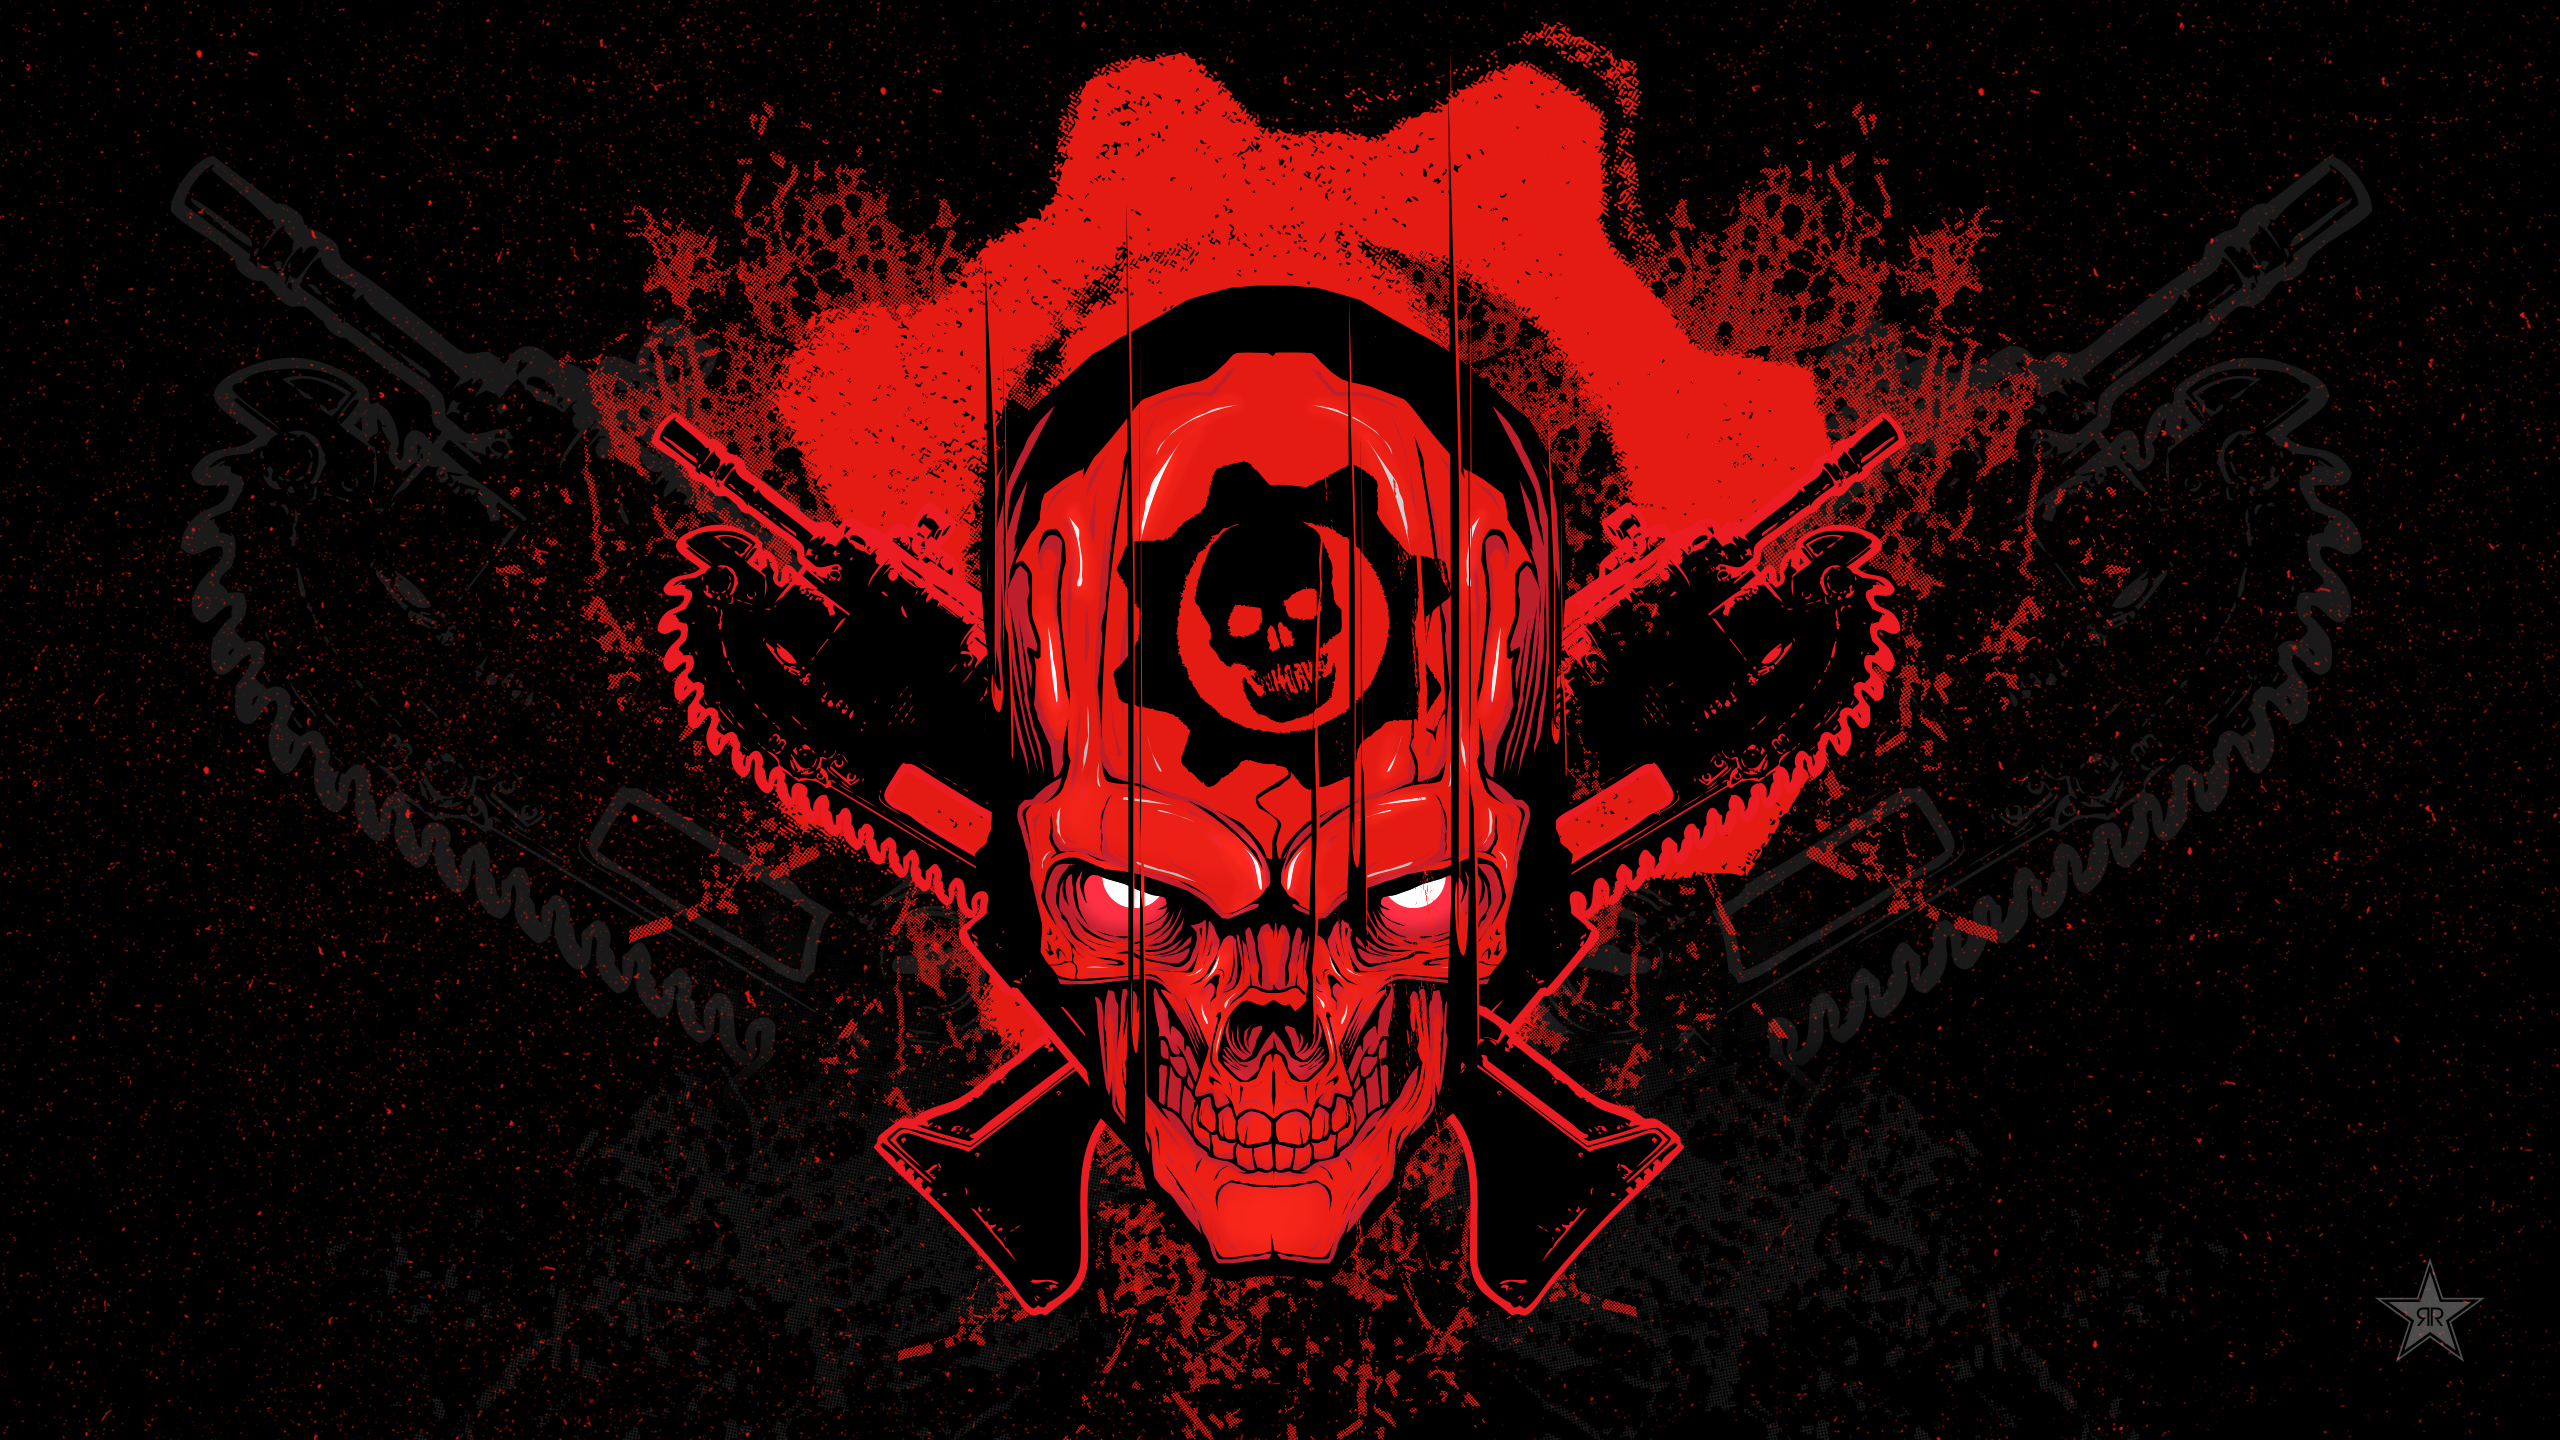 640x960 Gears Of War 4 Skull Iphone 4 Iphone 4s Hd 4k Wallpapers